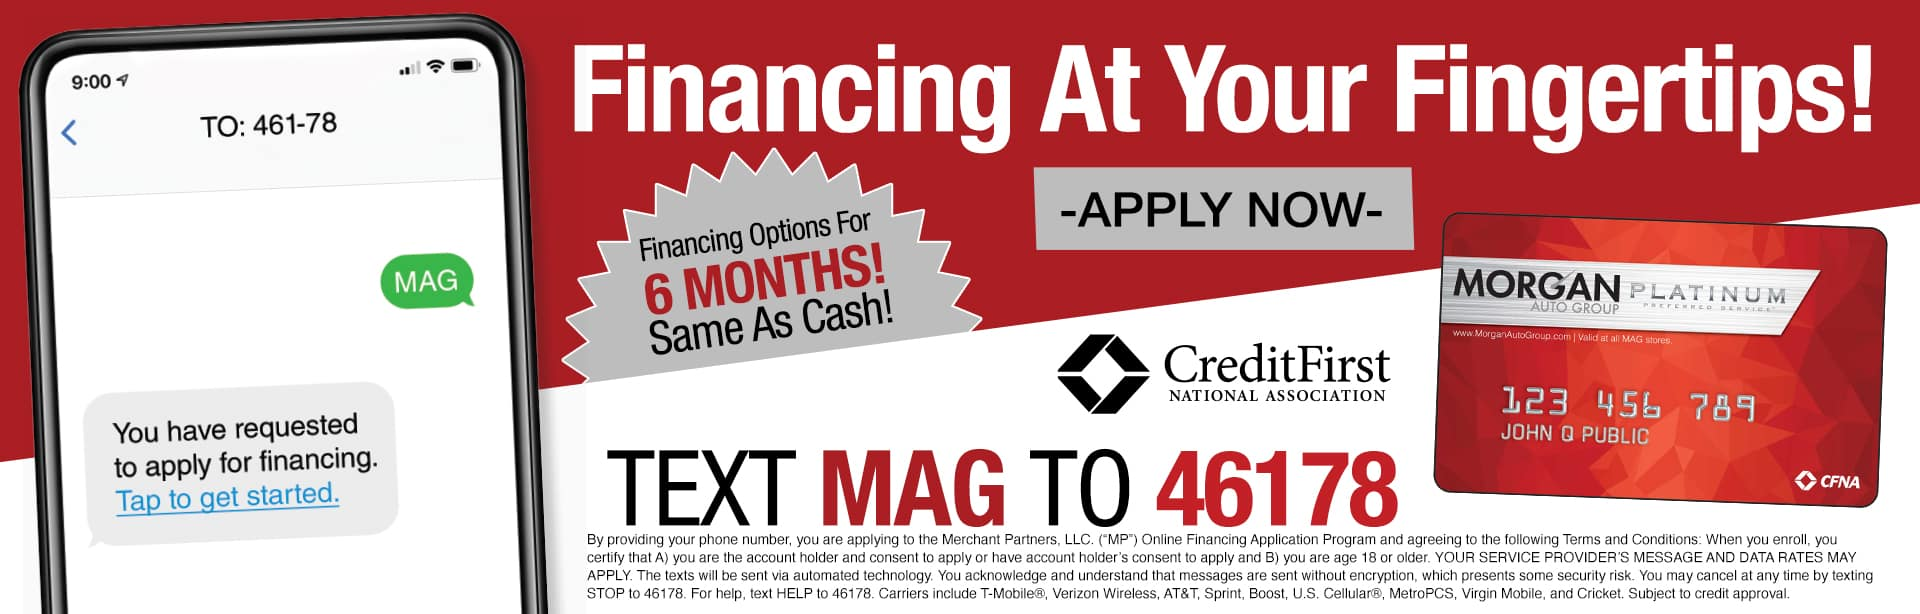 Financing At Your Fingertips! Financing Options For 6 Months! Same As Cash!